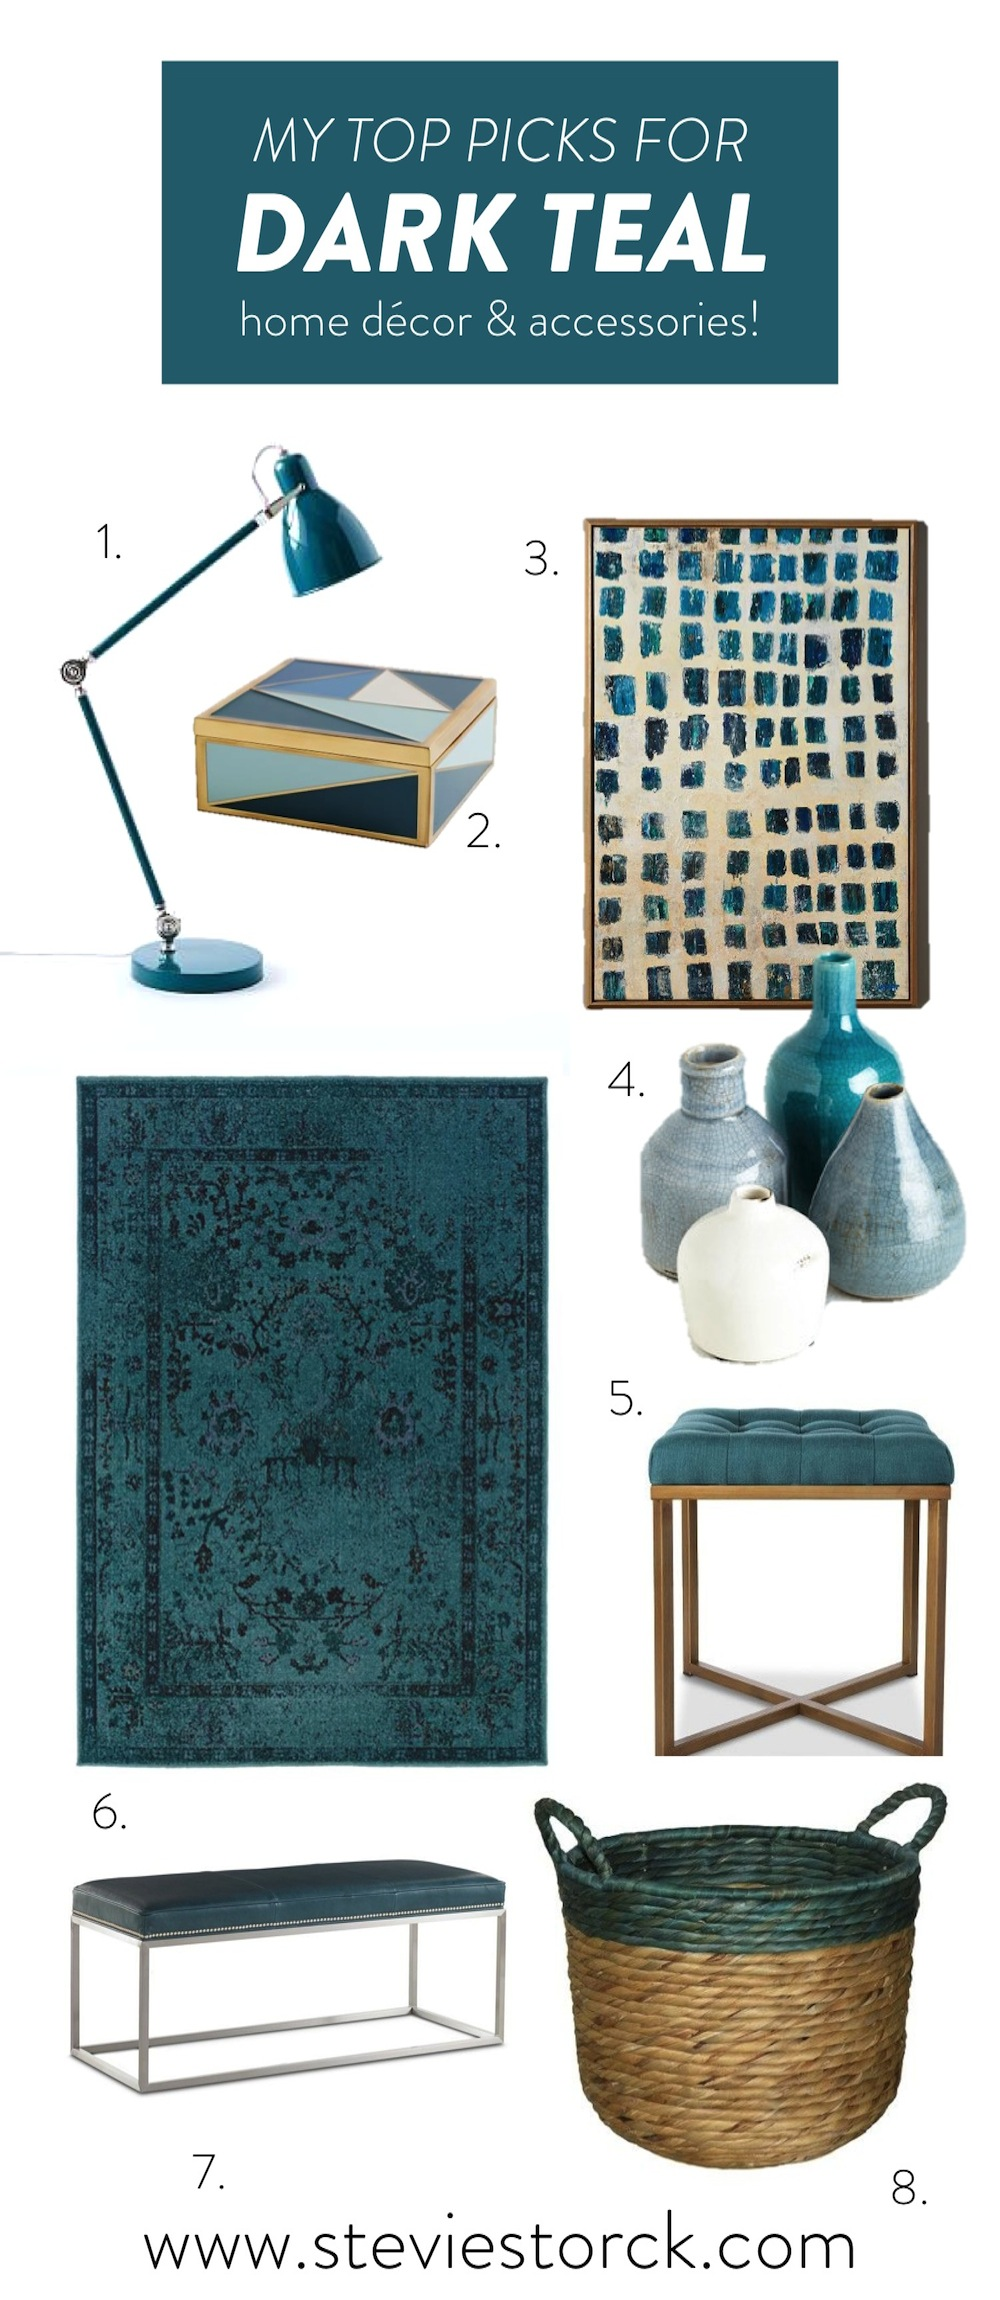 Dark Teal Home Decor Inspiration Roundup, West Elm, Anthropologie, One Kings Lane, Target, ModCloth